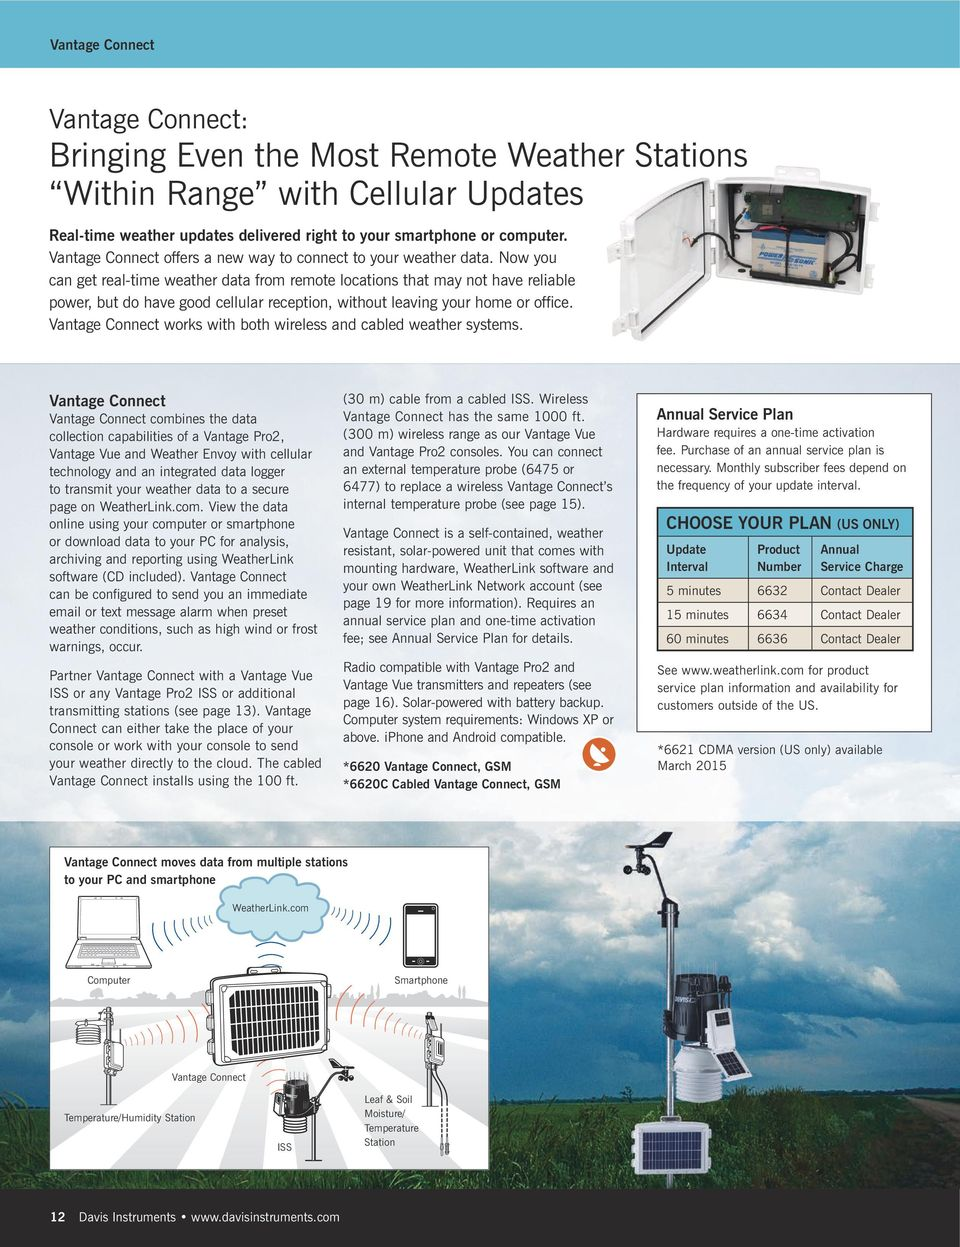 Now you can get real-time weather data from remote locations that may not have reliable power, but do have good cellular reception, without leaving your home or office.